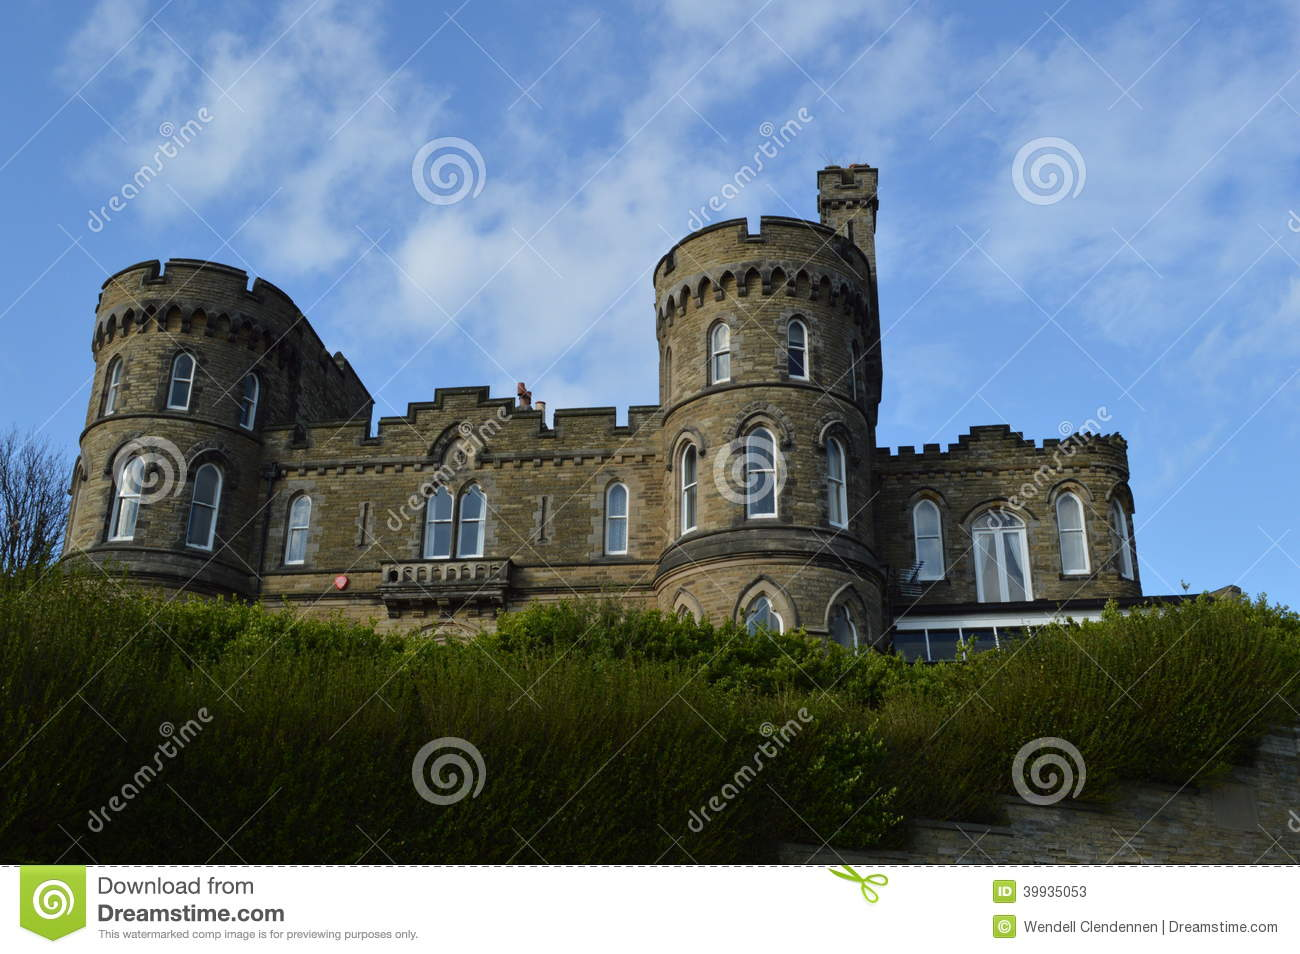 Castle Shaped Building In Scarborough England Stock Image